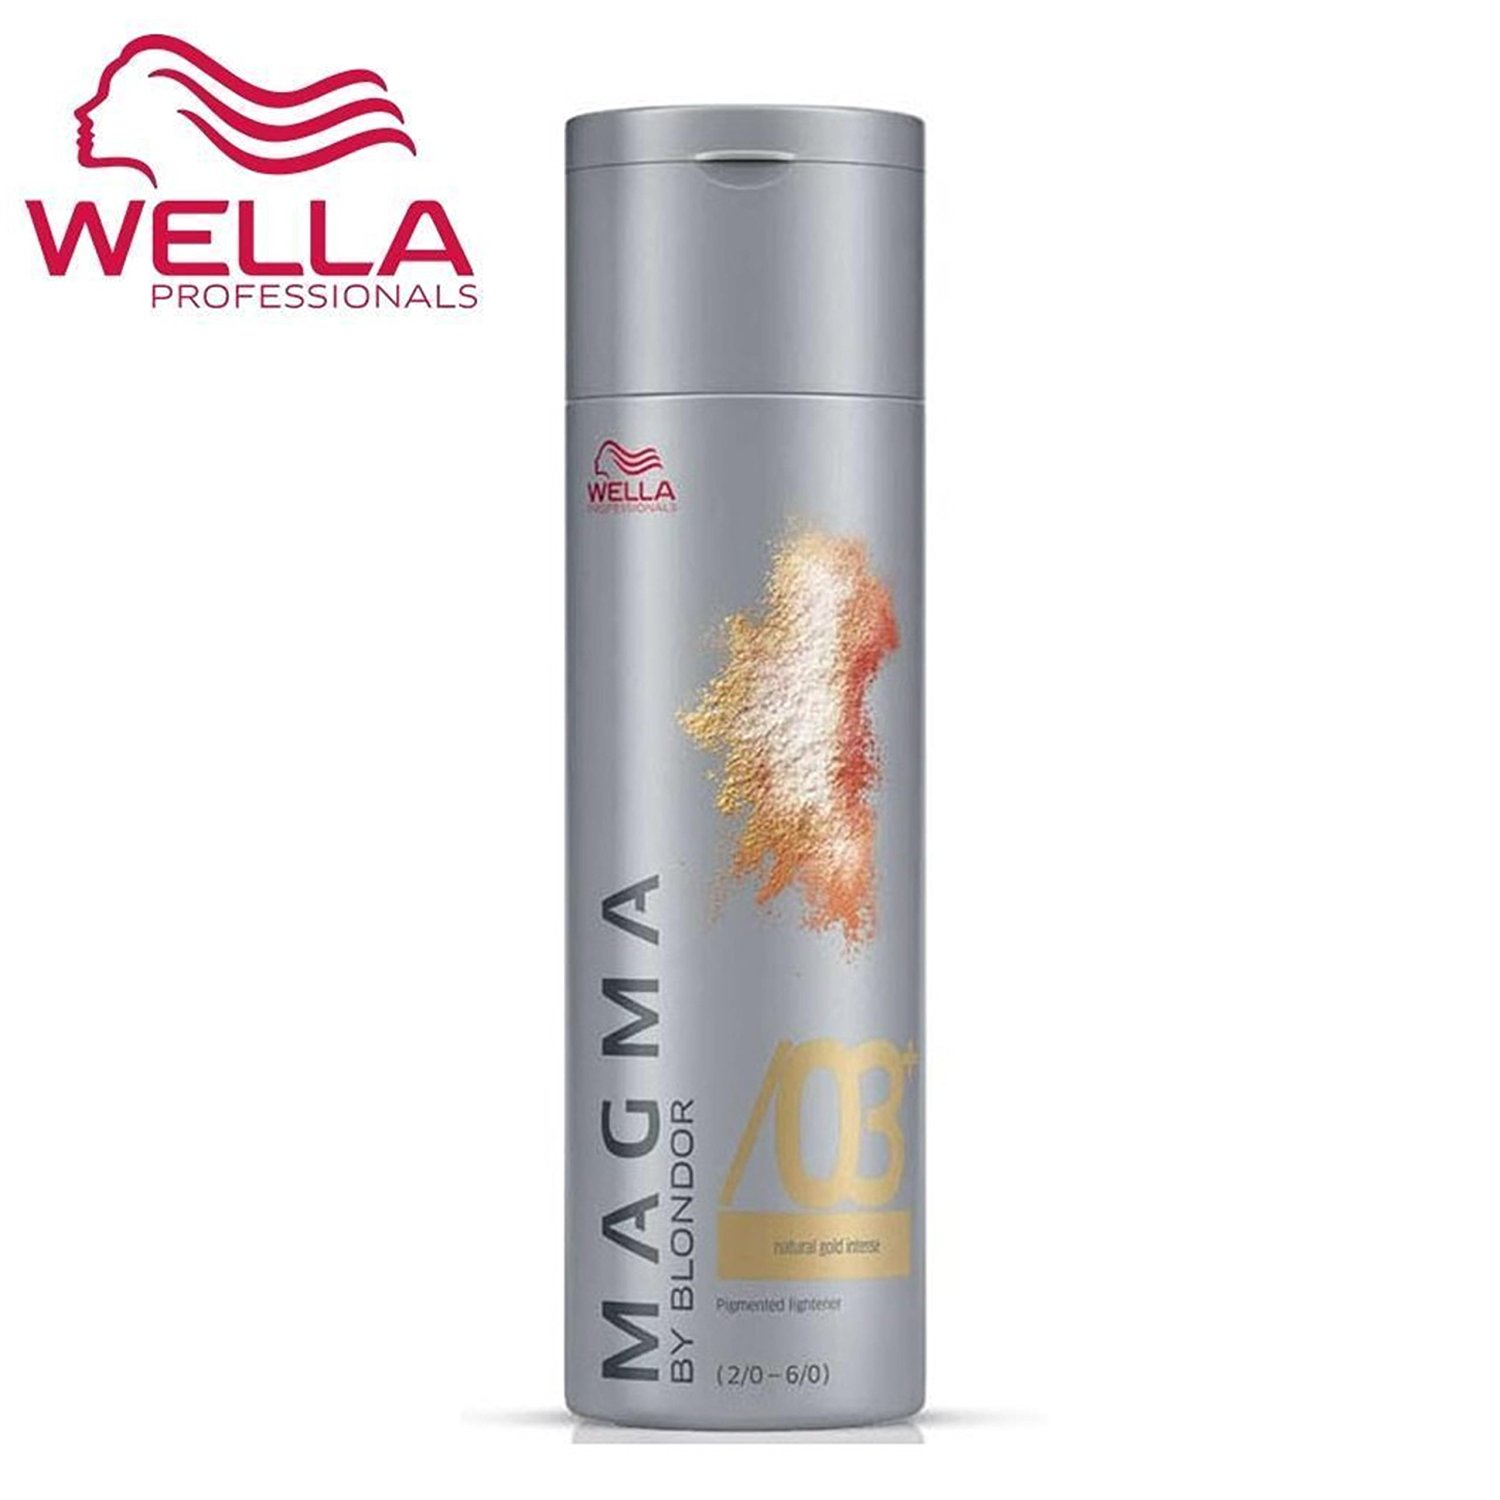 Wella Professionals Magma by Blondor Pigmented Lightener (/03+ Natural Gold Intense) 120ml